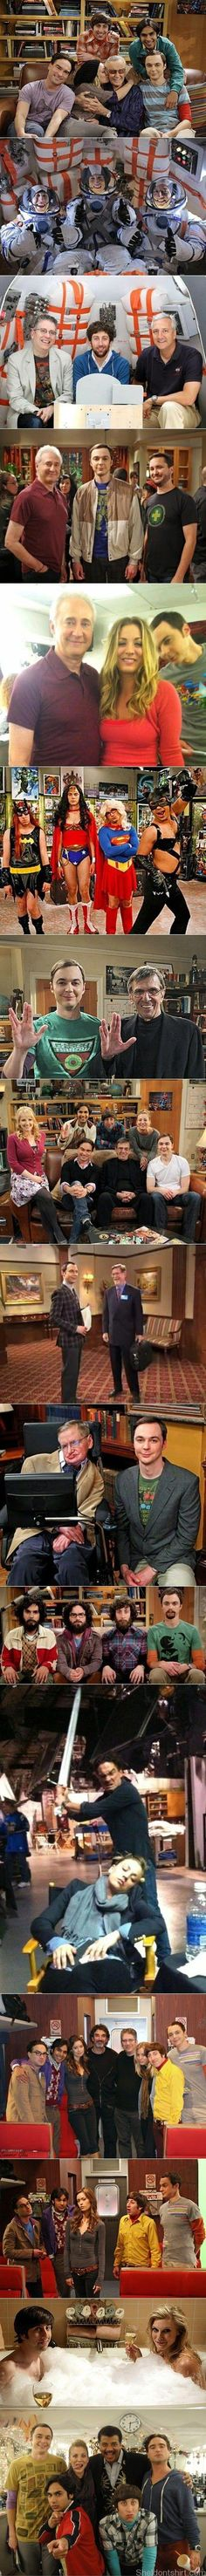 duelos.net Is For Sale -   The Big Bang Theory and their geek royalty guest stars   #TBBT